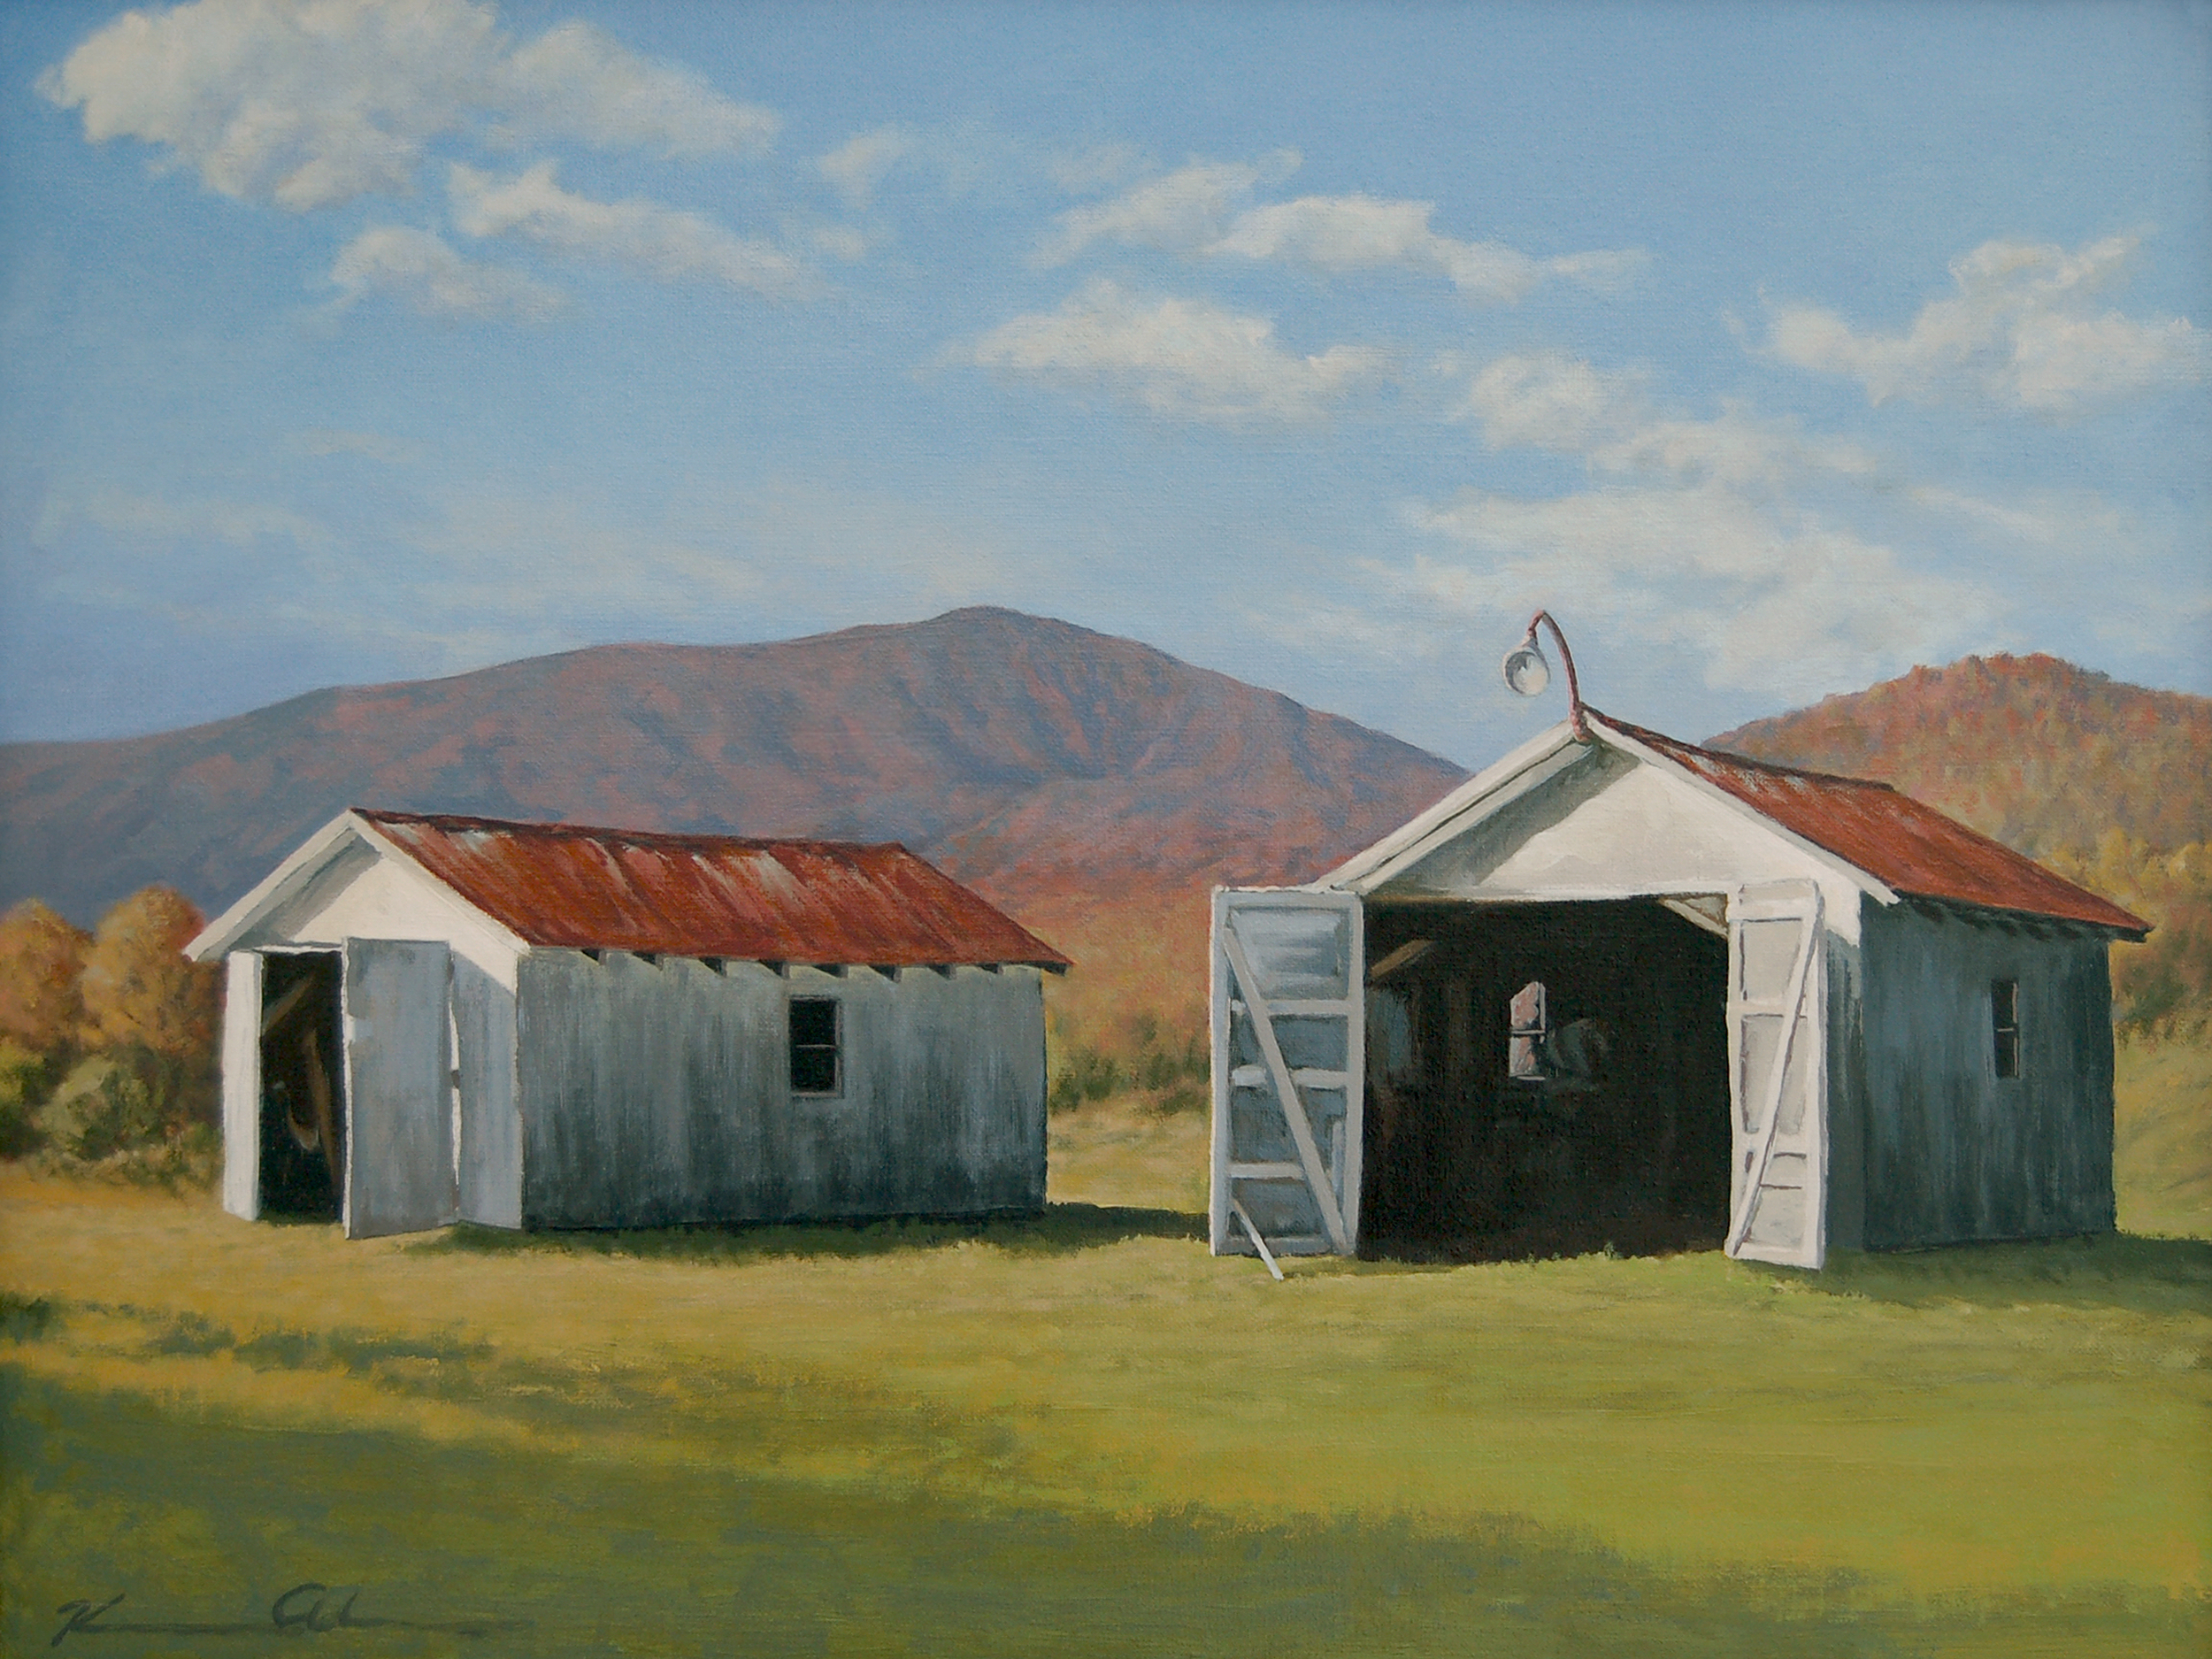 Twin Sheds 18 X 24 oil on canvas  SOLD